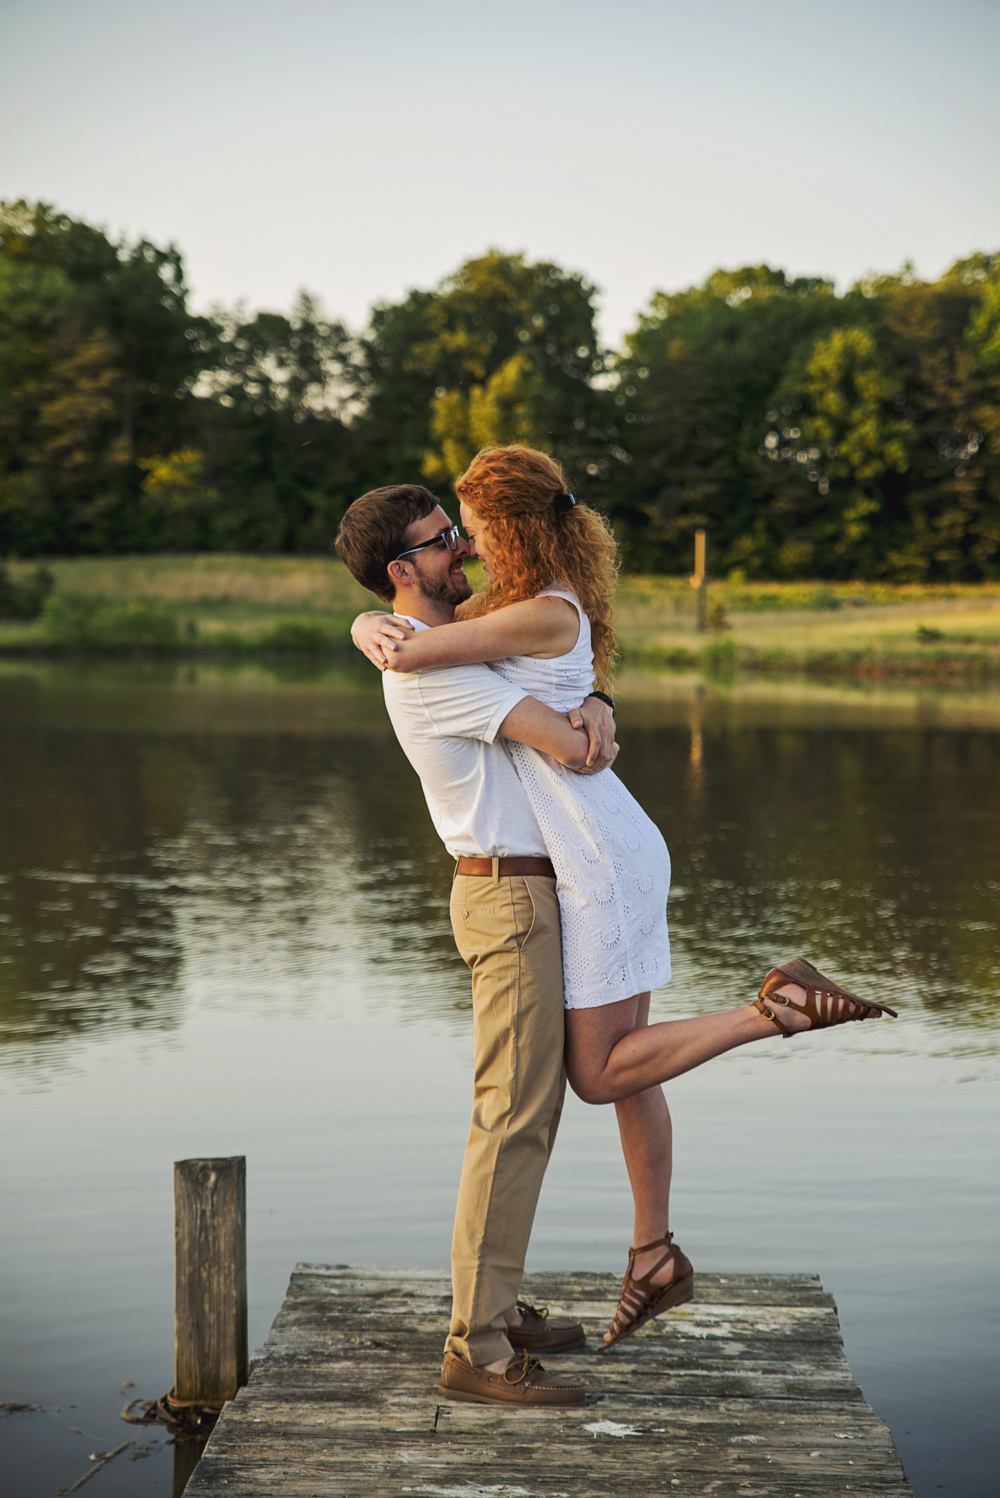 altavista_ginger_redhead_field_lake_engagement_session_small_town_lynchburg_va044.jpg